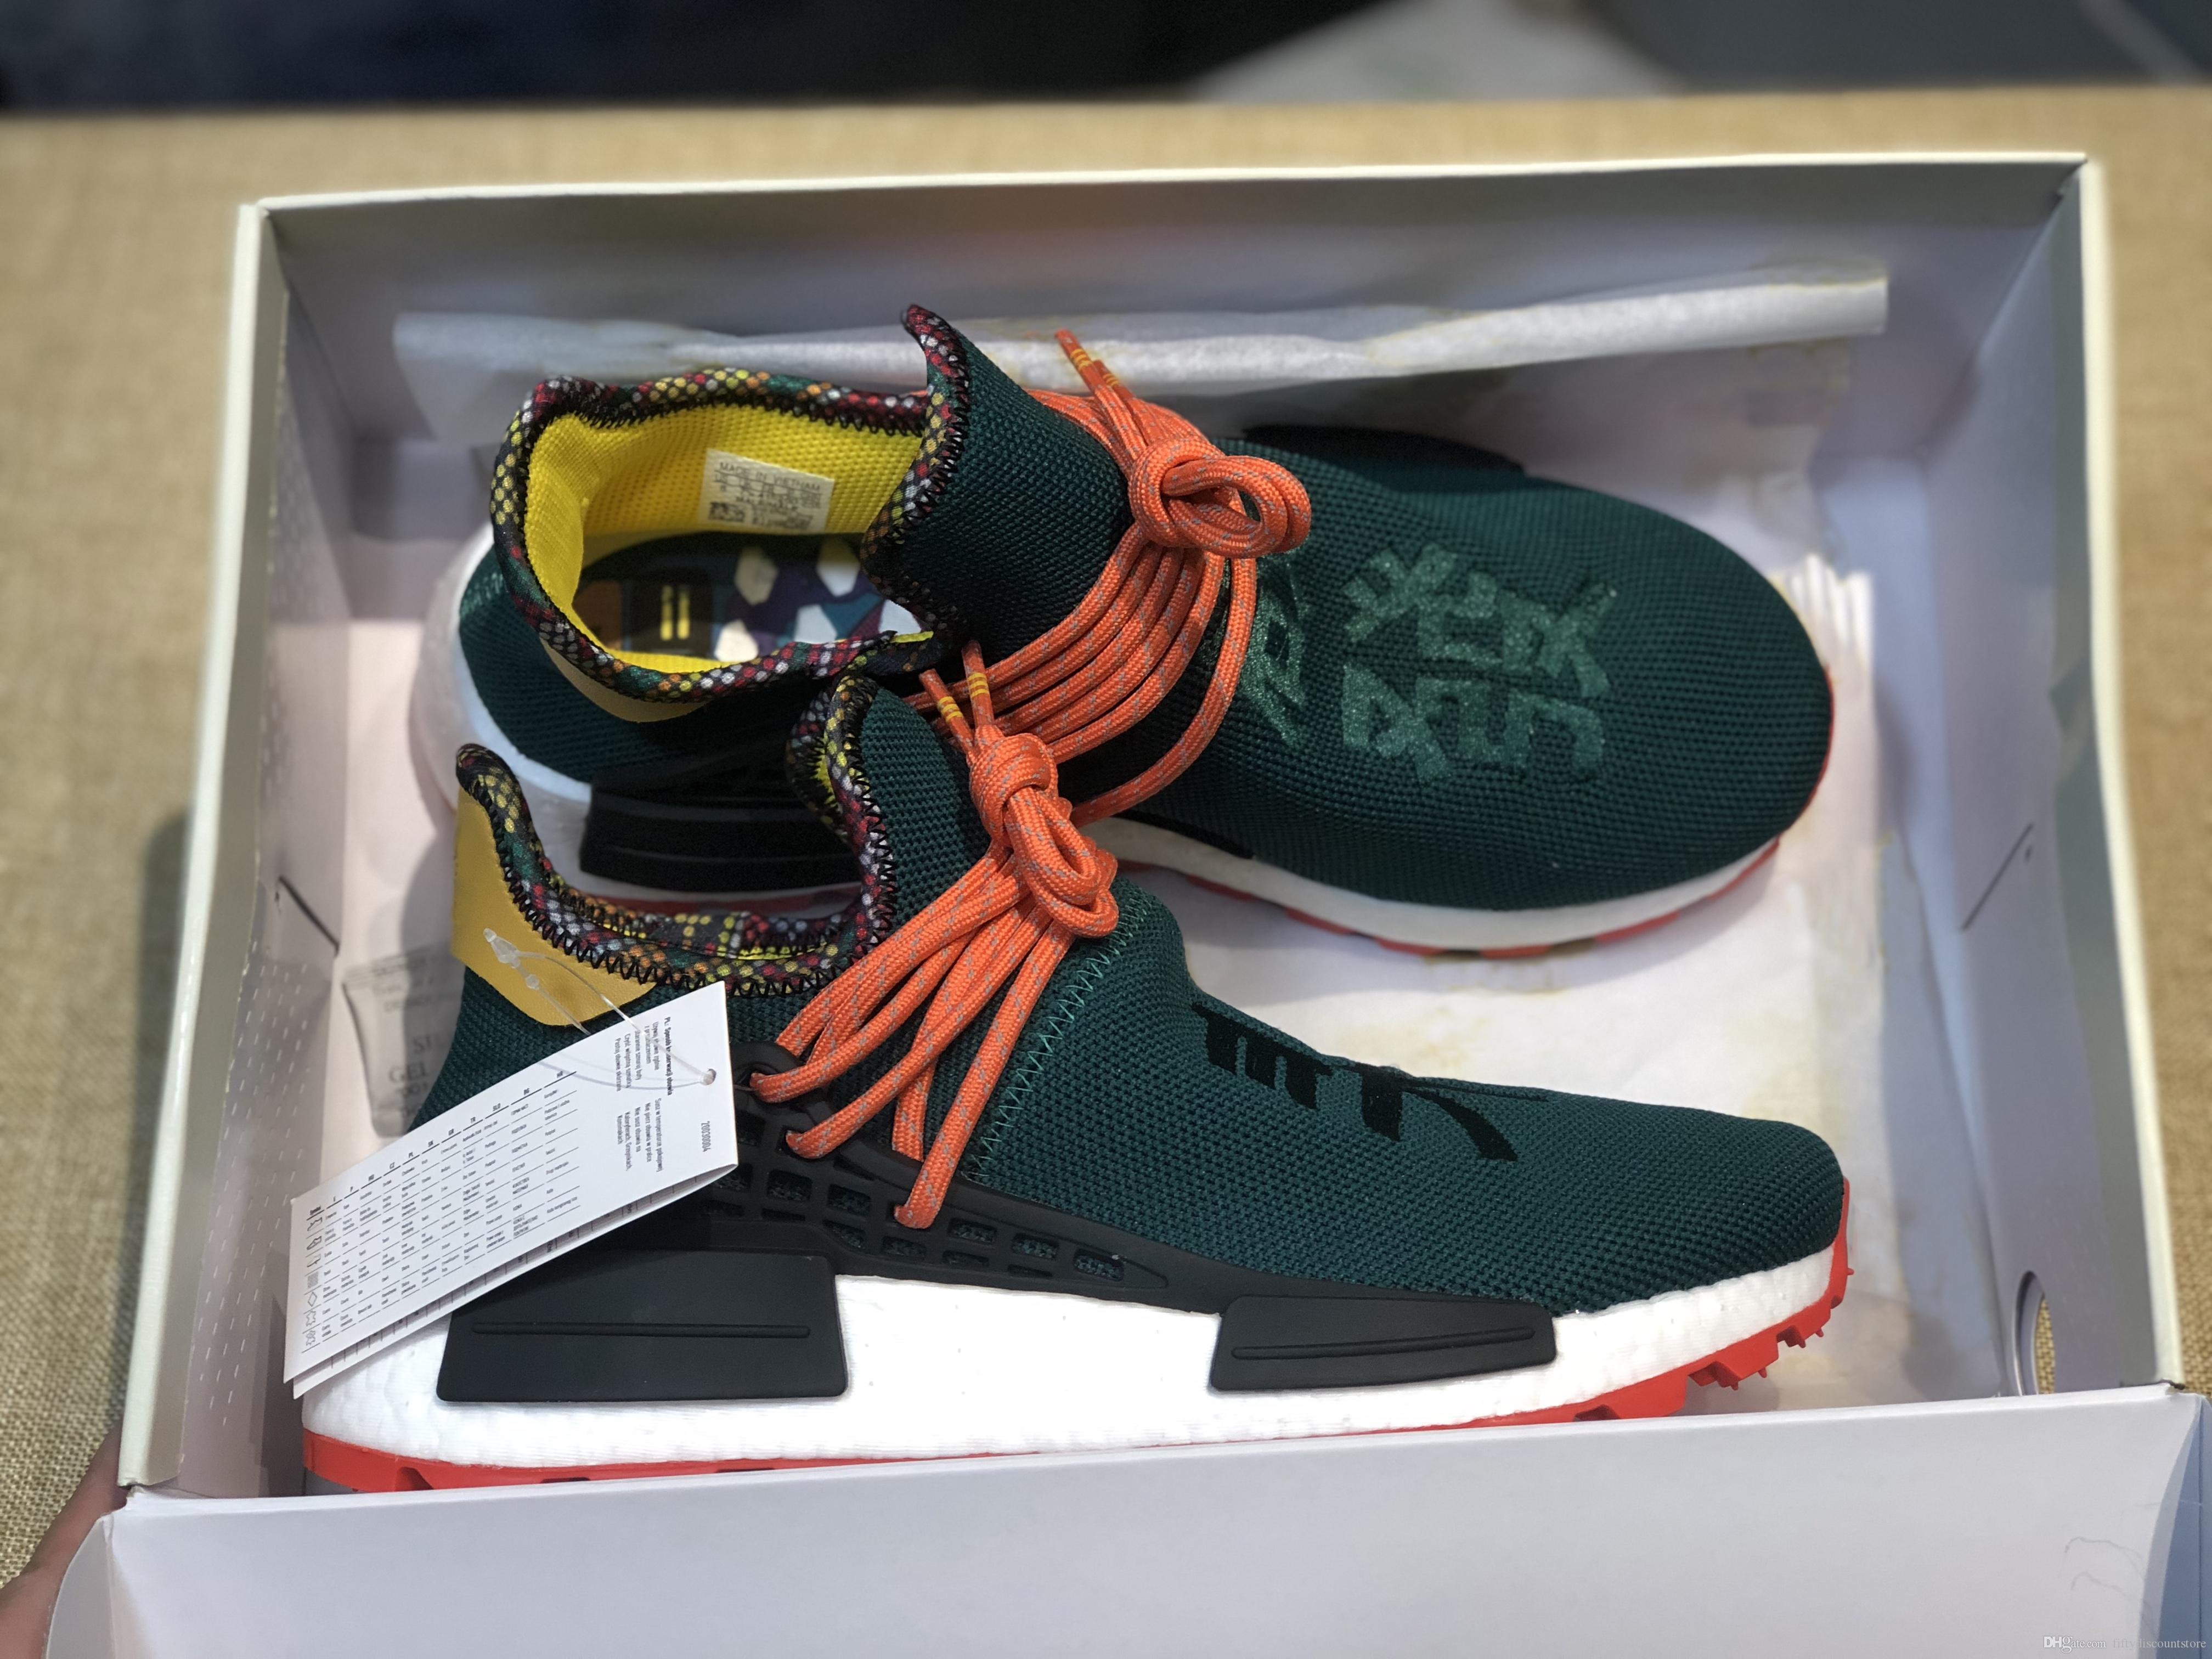 wholesale dealer 05880 89364 Top Quality 2019 Humanrace Hu Inspiration Pack running shoes real basf  bottom top quality Pharrell Williams trainer Sneakers with box 36-45